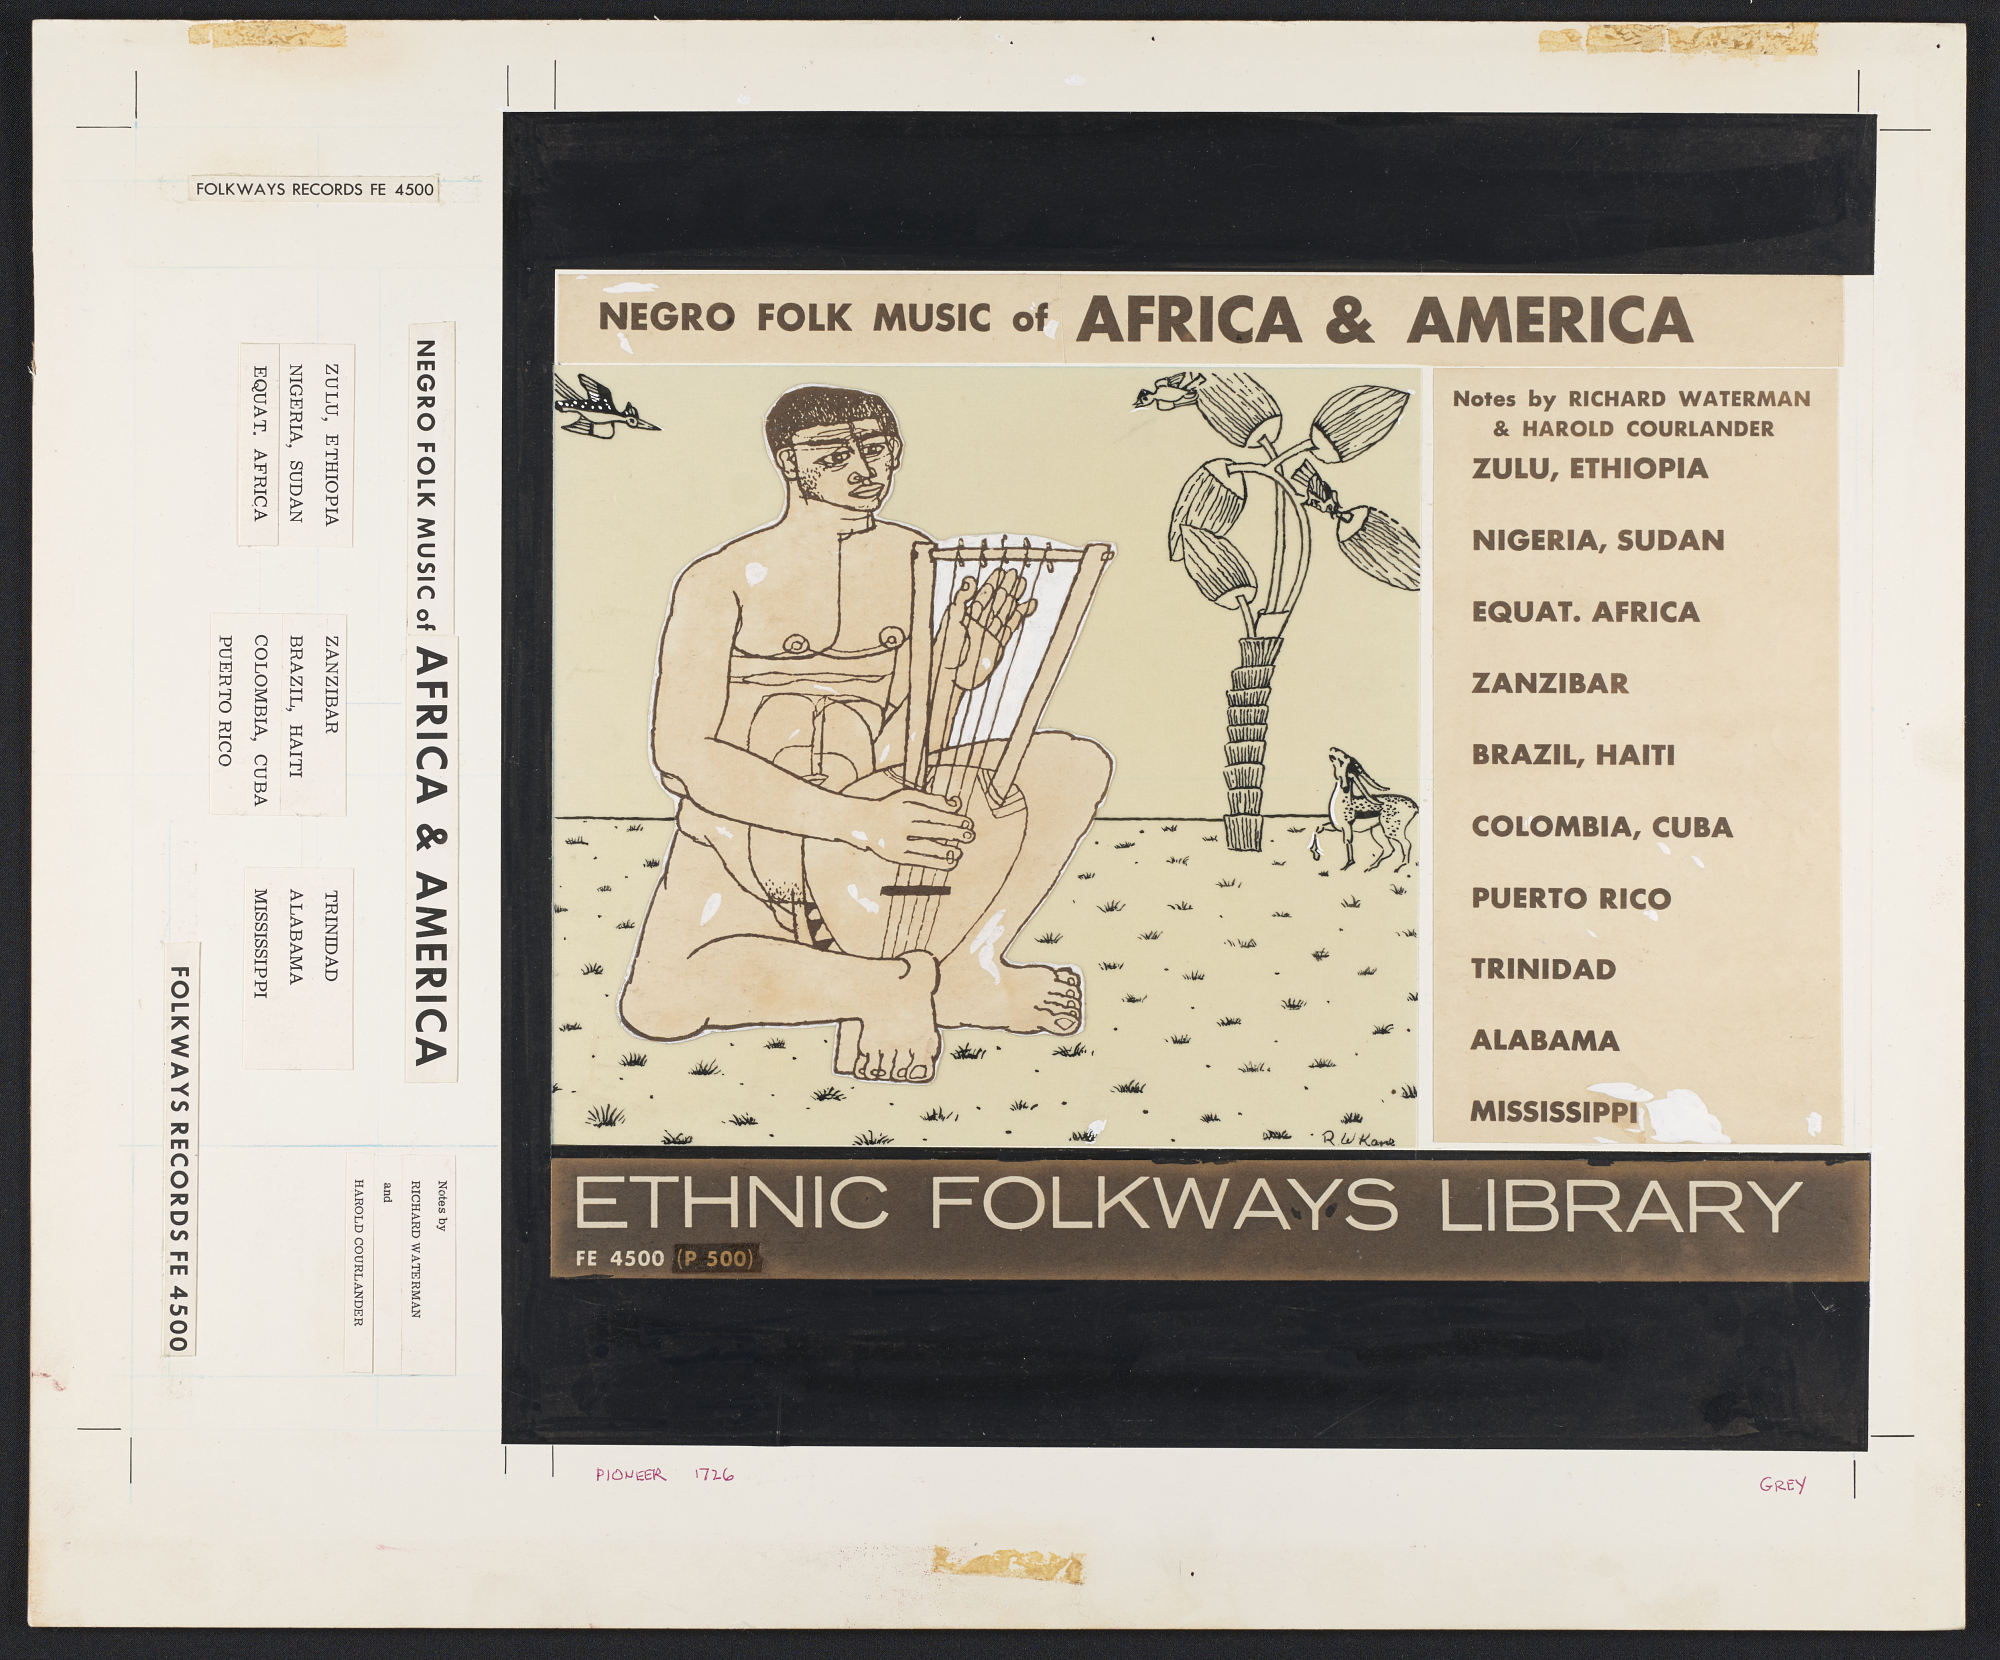 Negro folk music of Africa and America [sound recording] / edited by Harold Courlander